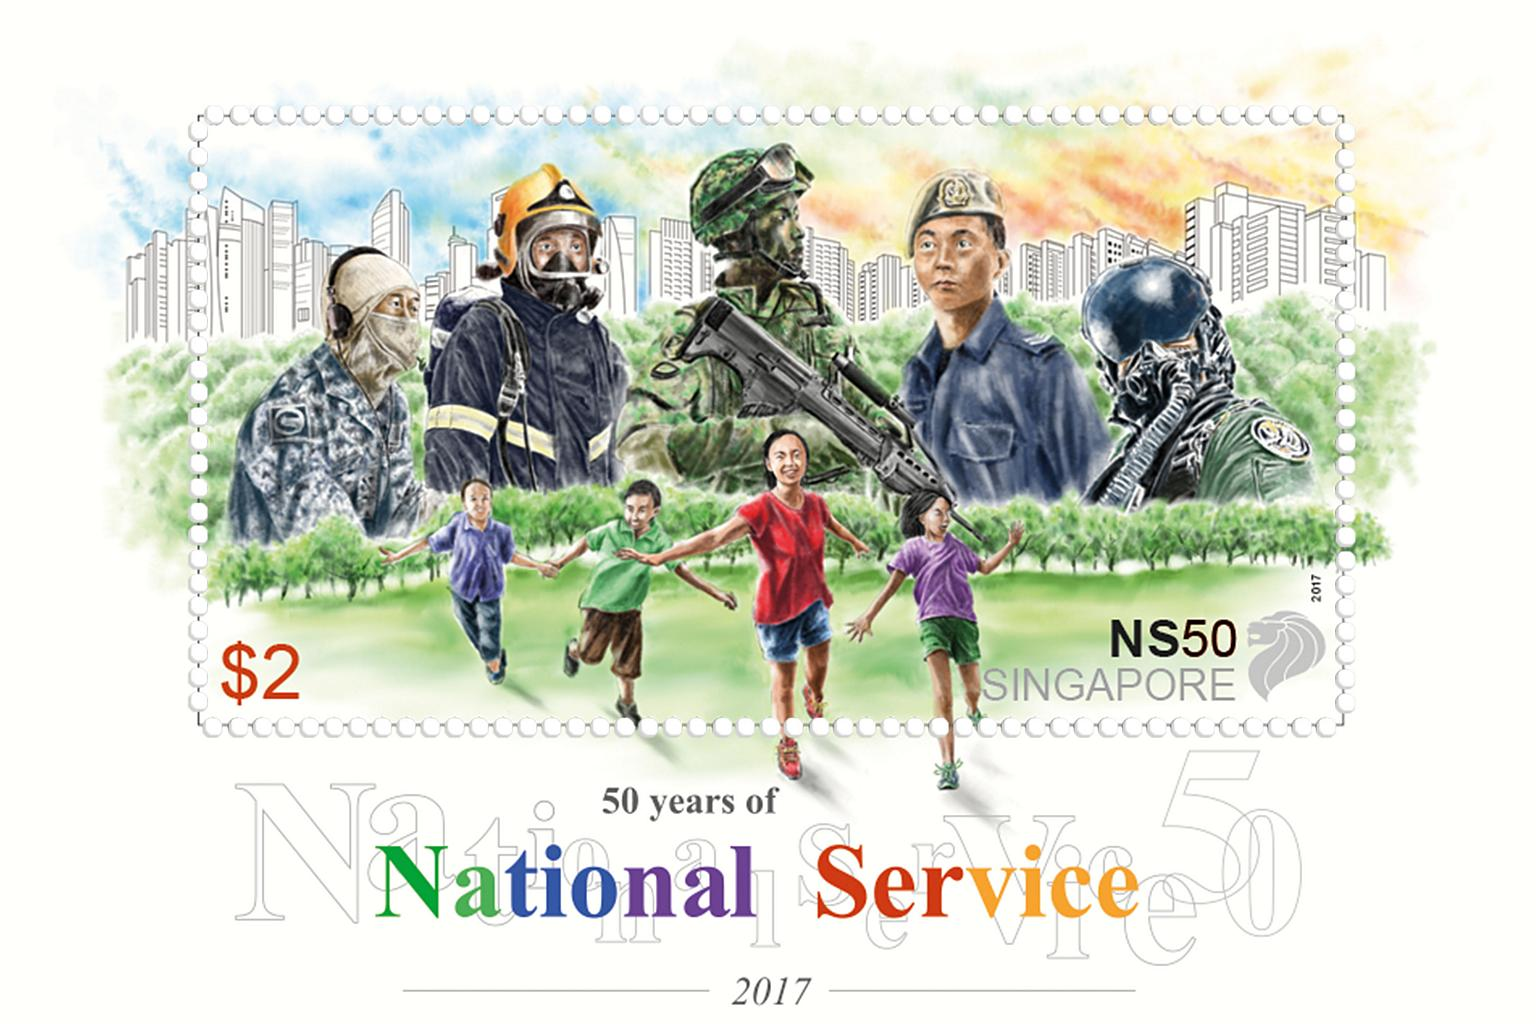 The NS50 stamp (mint) - $2 denominations